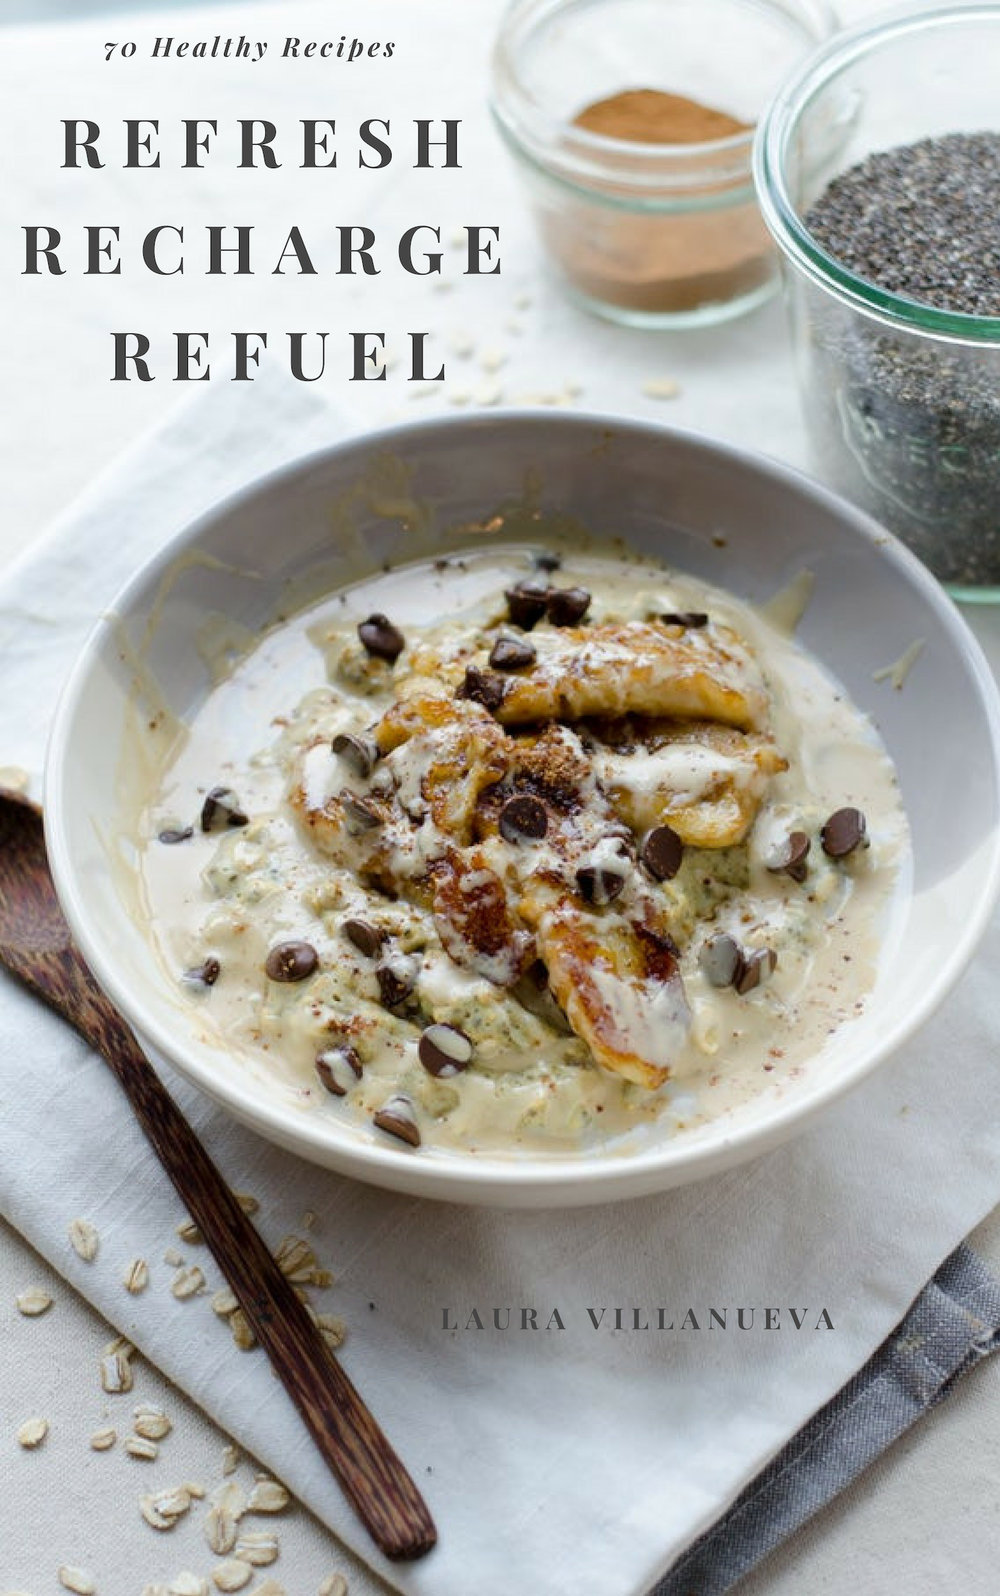 REFRESH RECHARGE   REFUEL - It's finally here. My Ebook and paperback. REFRESH-RECHARGE-REFUEL is now available for purchase. I put a lot of hard work into writing this recipe book for you.